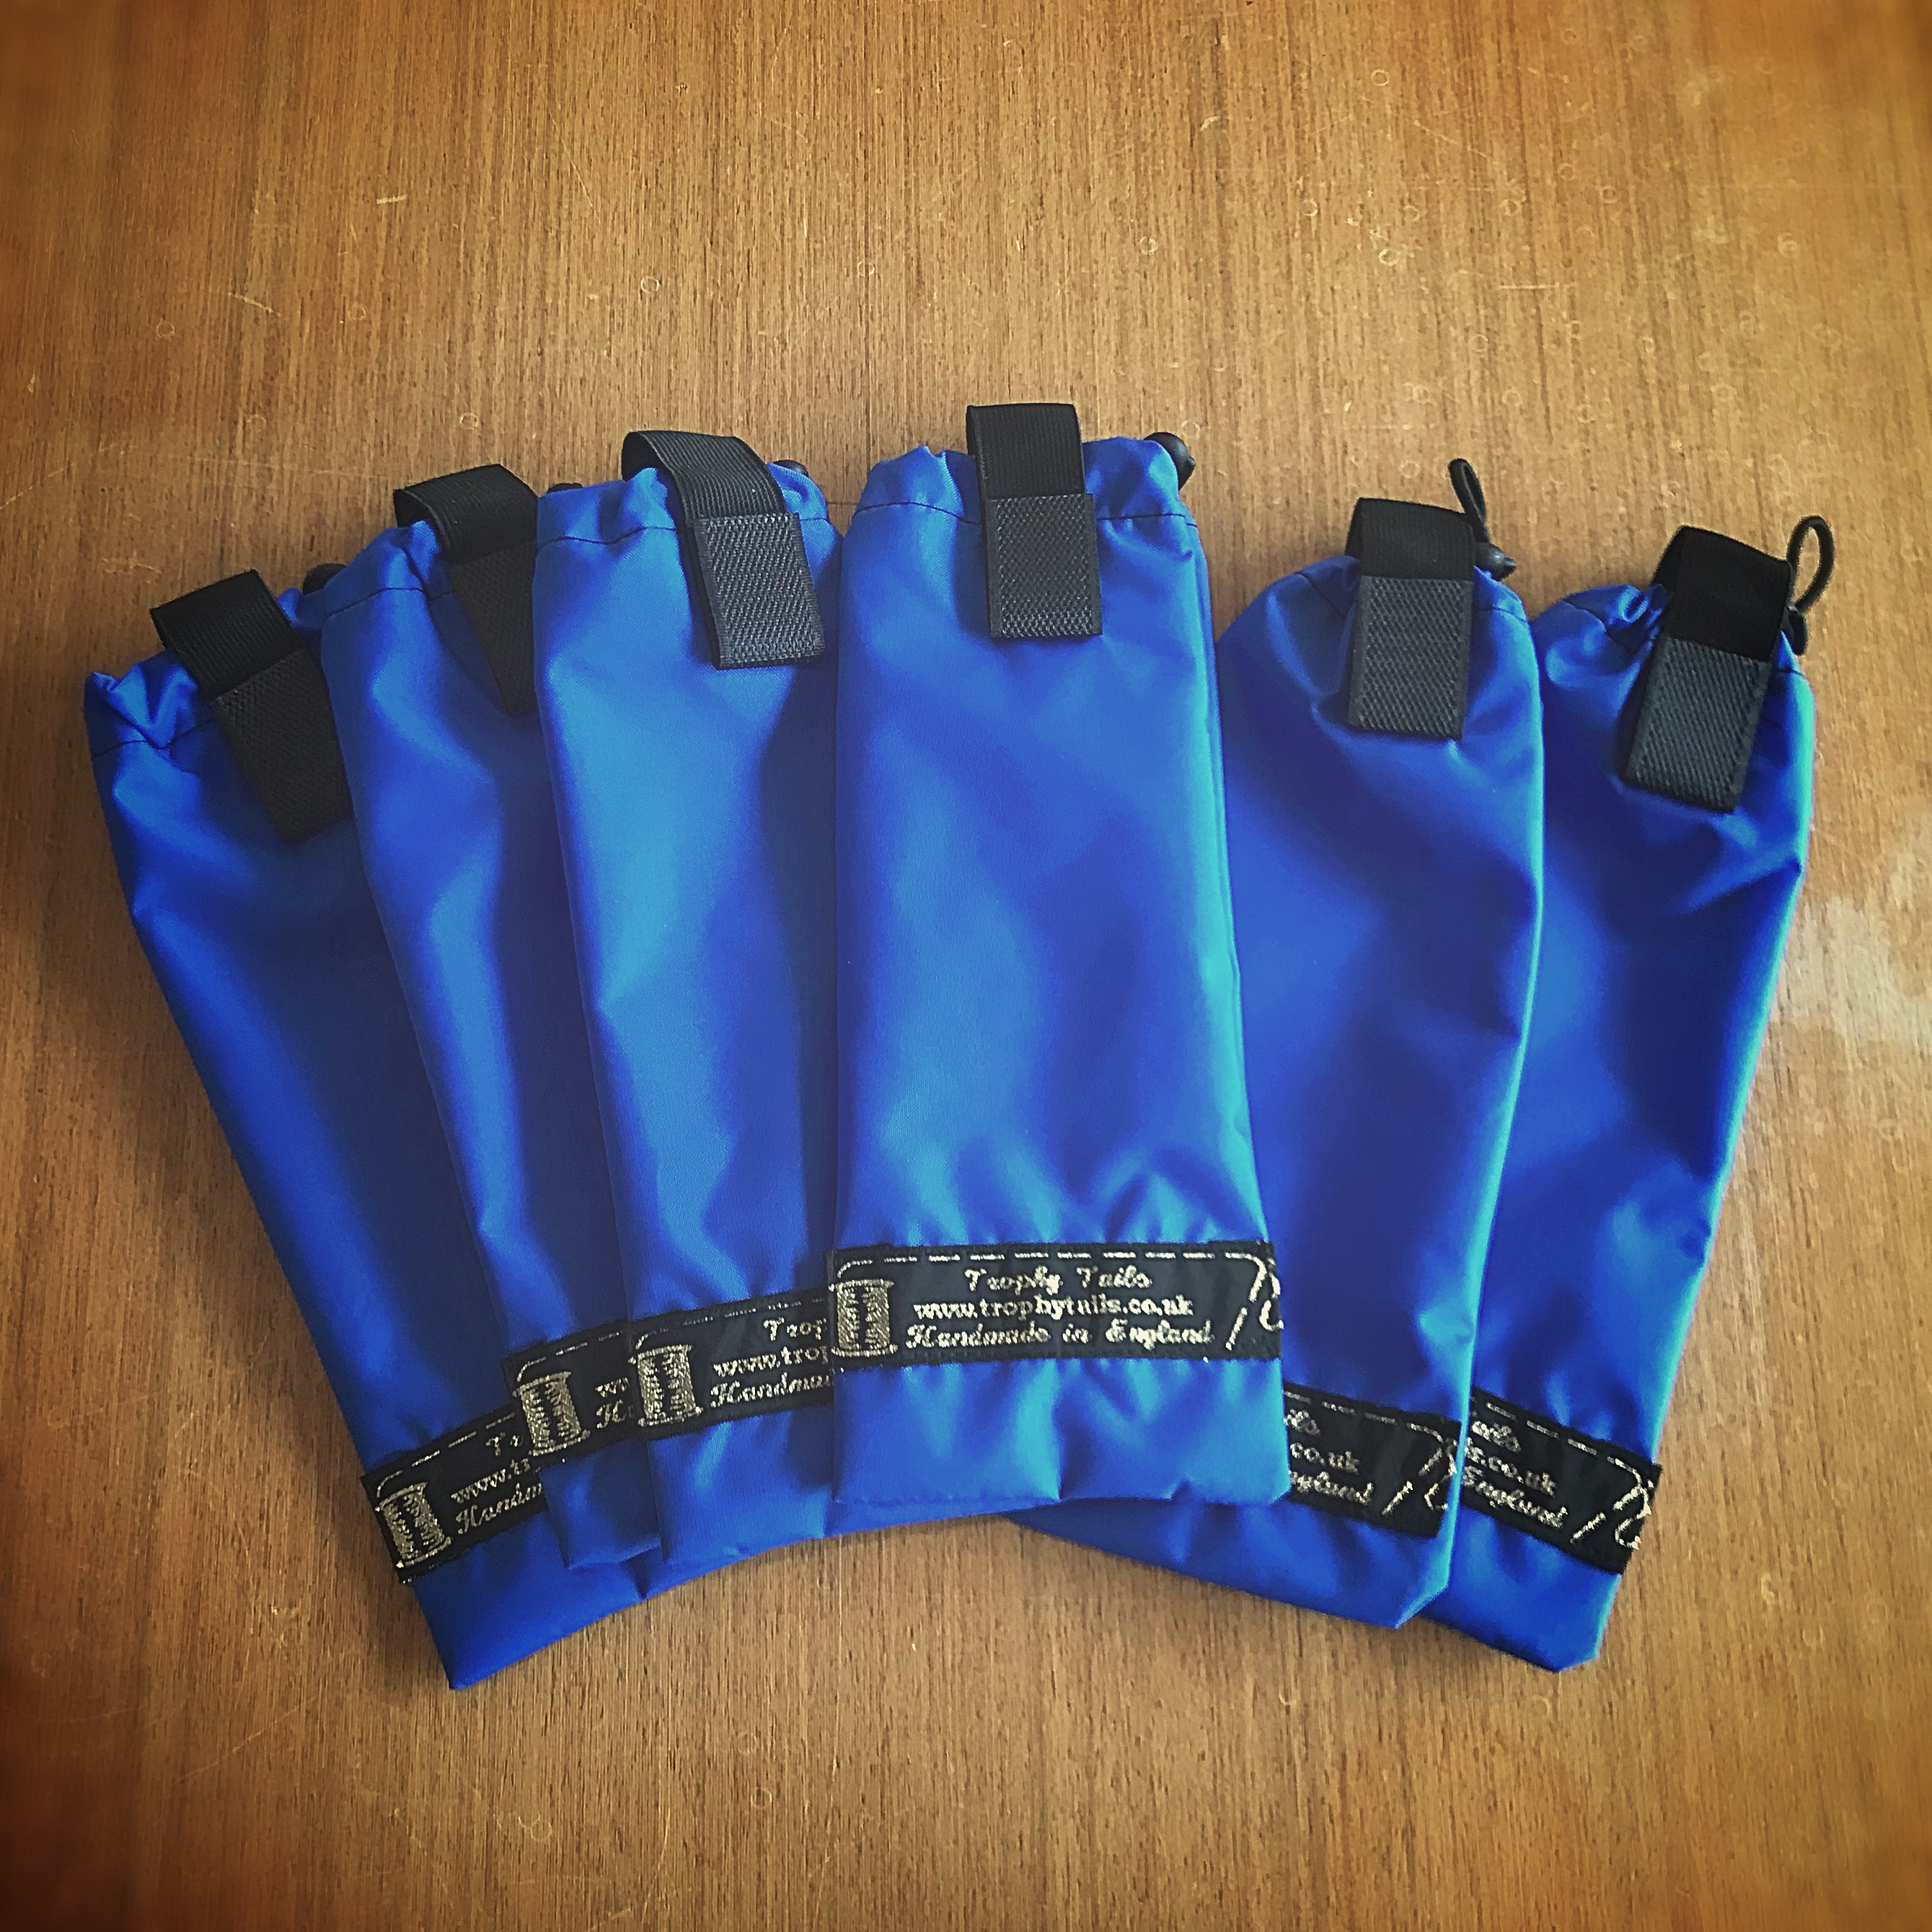 Heavy Duty mane bags set of 6 with toggles - royal blue